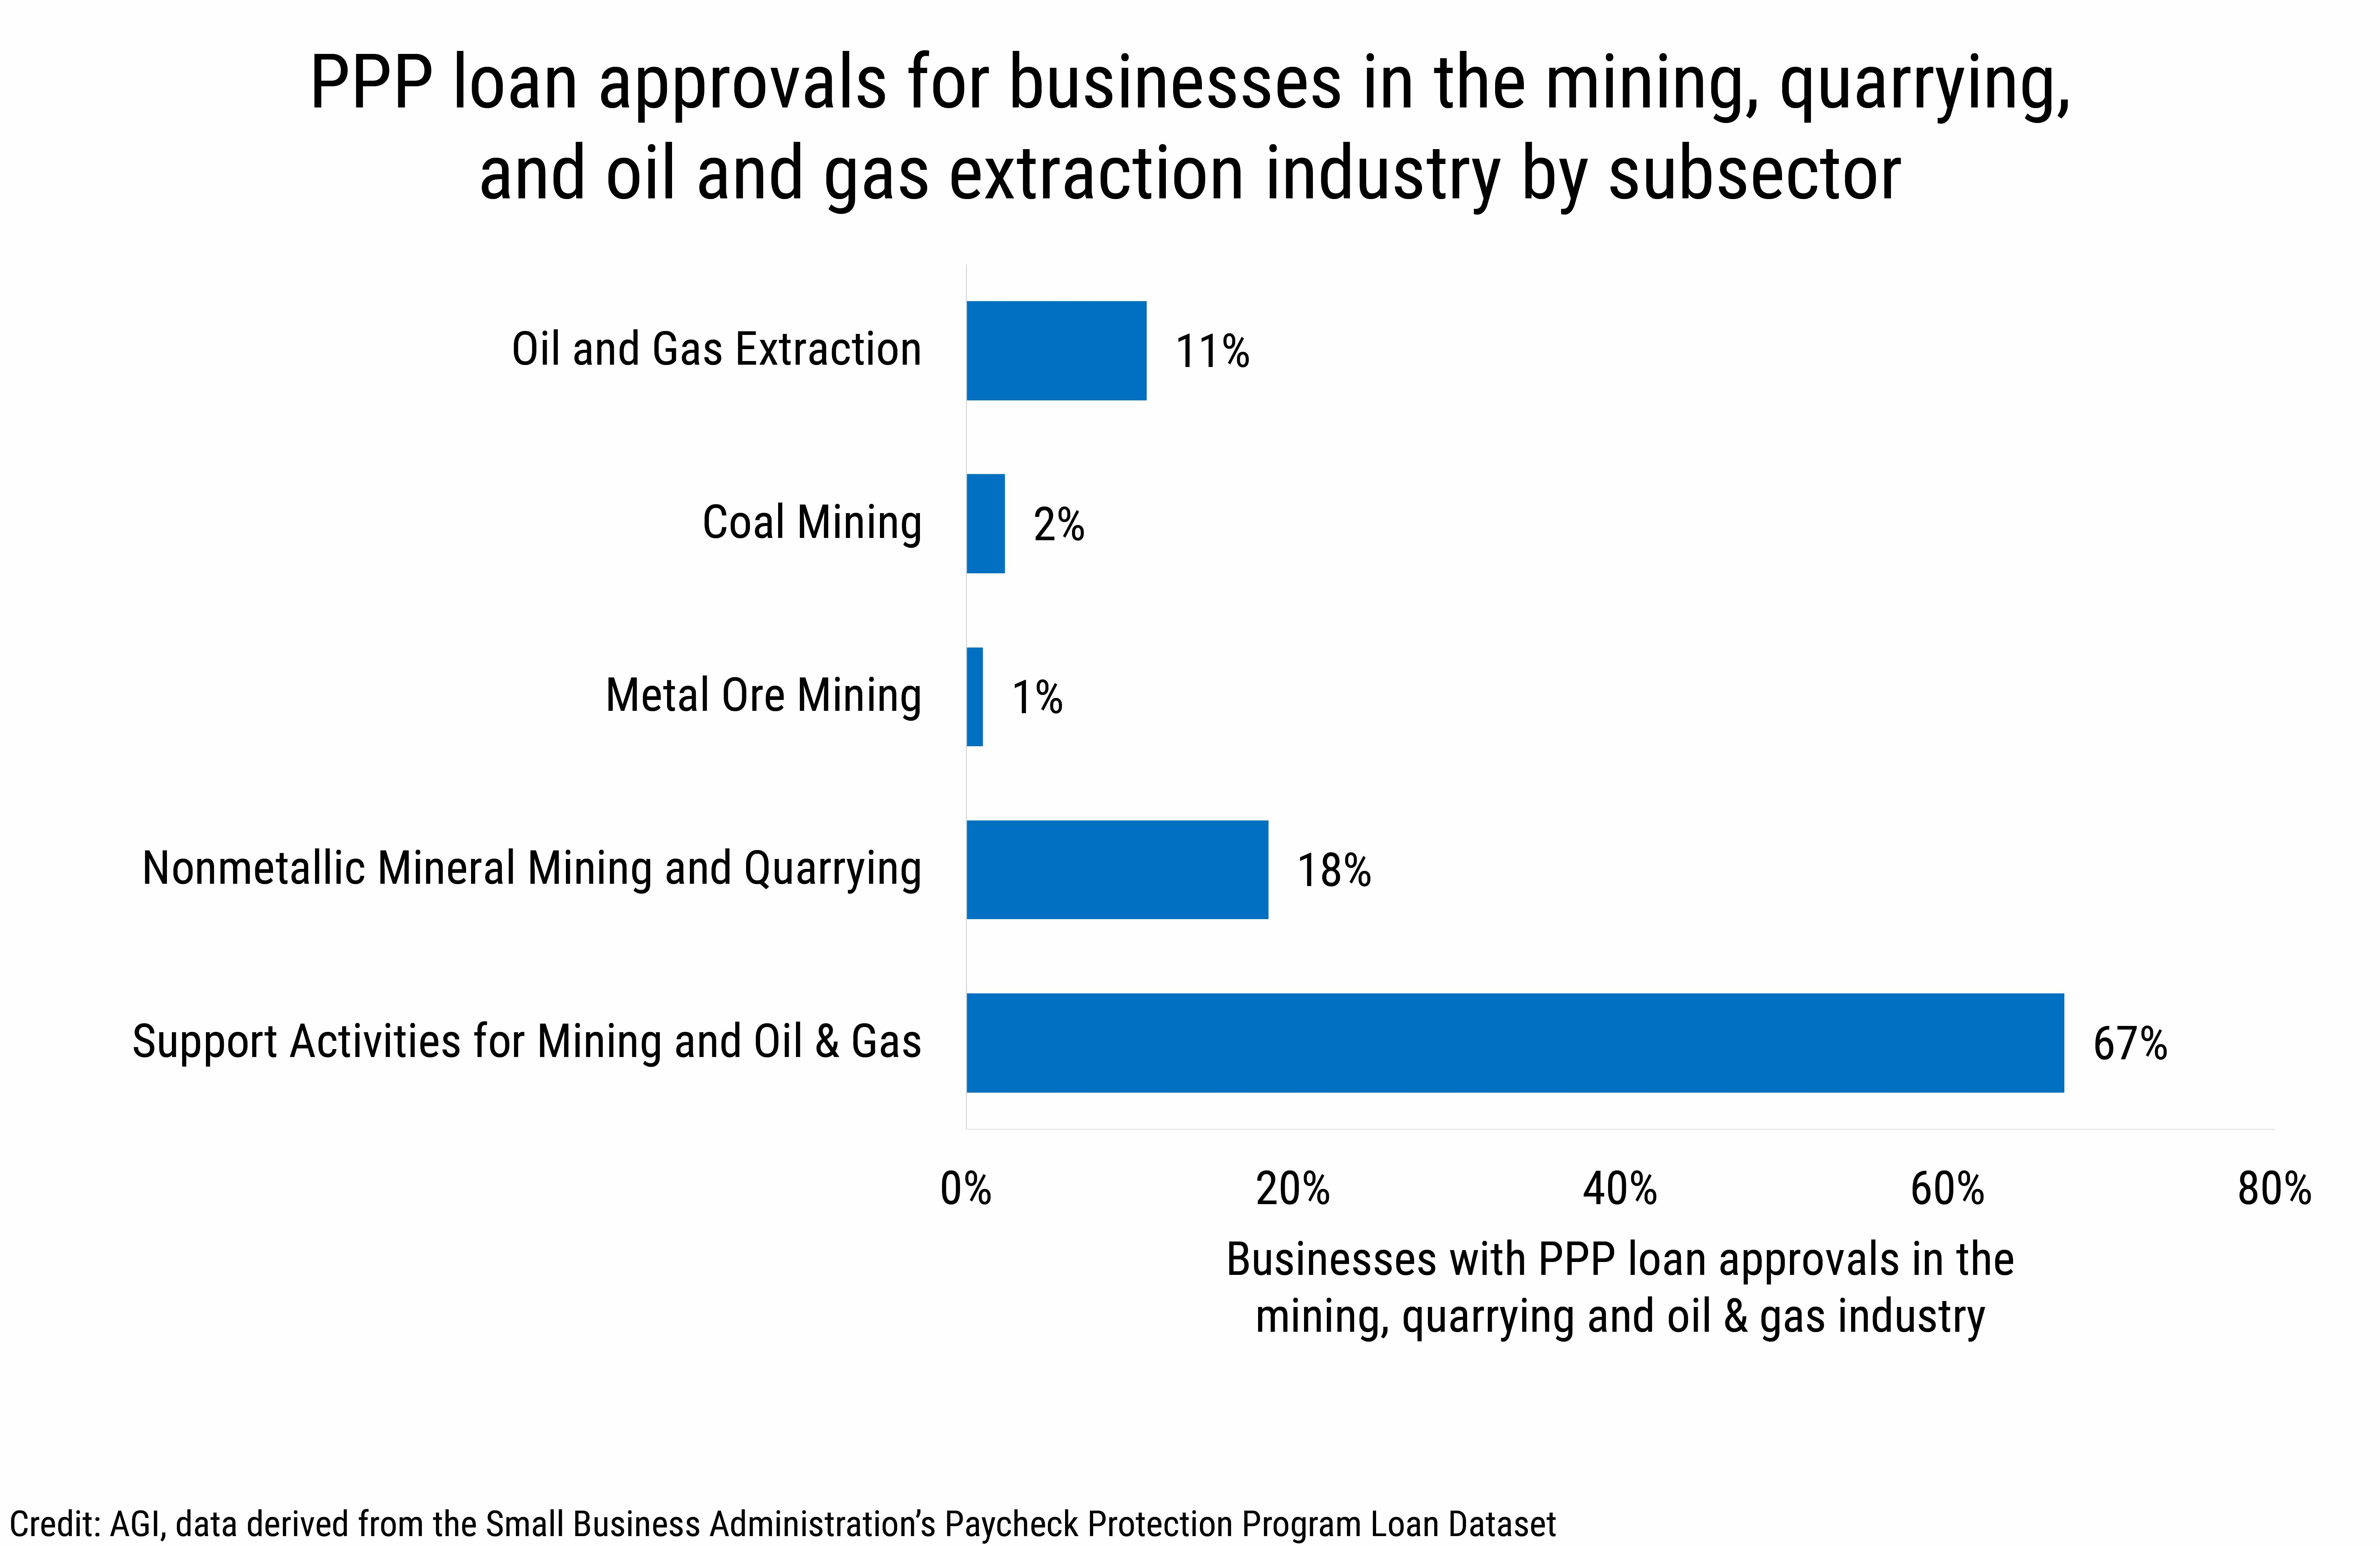 DB_2020-016 chart 01: PPP loan approvals for businesses in the mining, quarrying, and oil and gas extraction industry by subsector. (credit: AGI, data derived from the Small Business Administration's Paycheck Protection Program Loan Dataset)